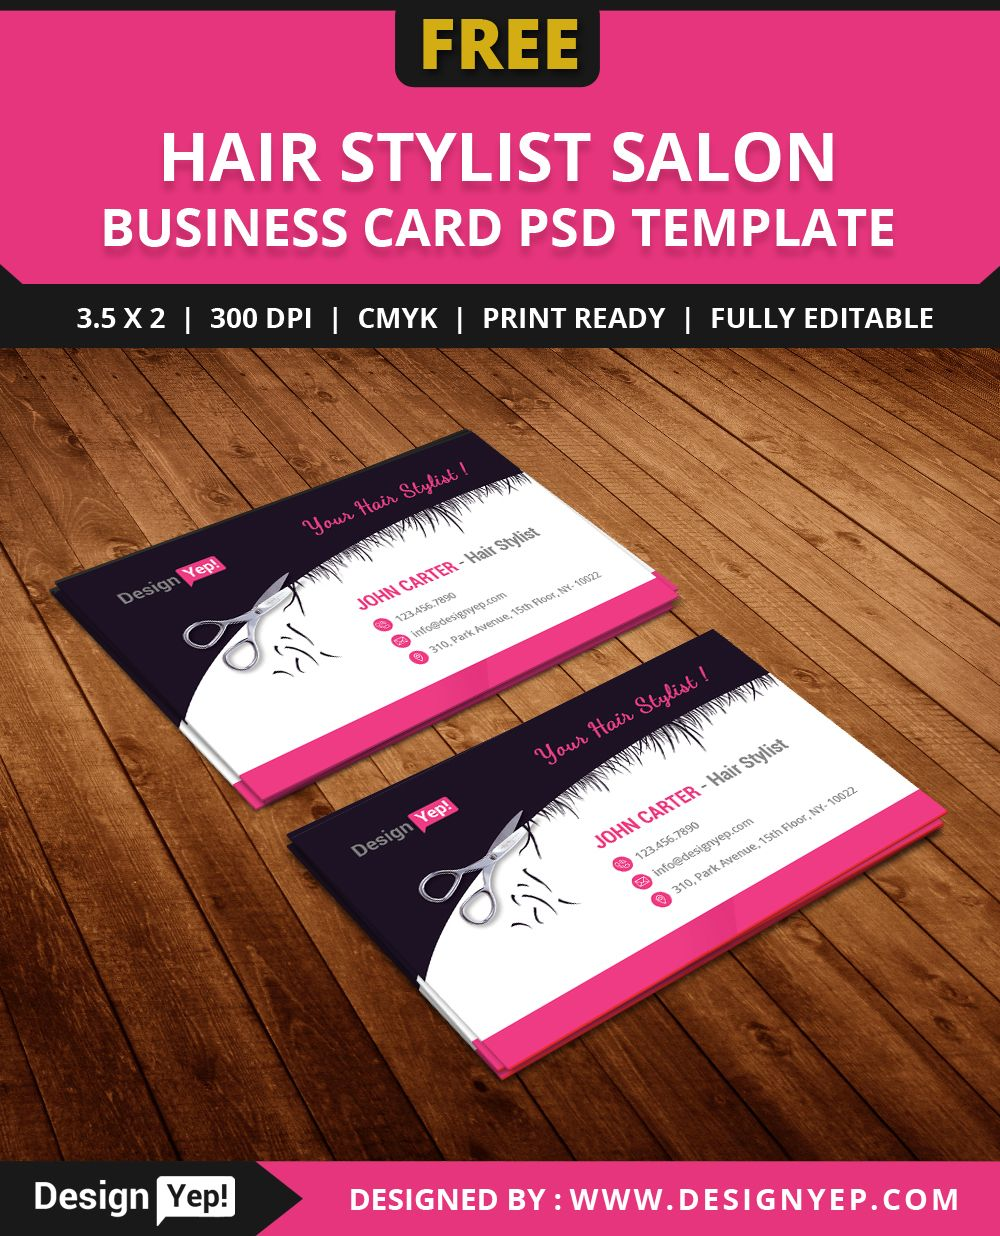 Free hair stylist salon business card template psd free business free hair stylist salon business card template psd wajeb Gallery